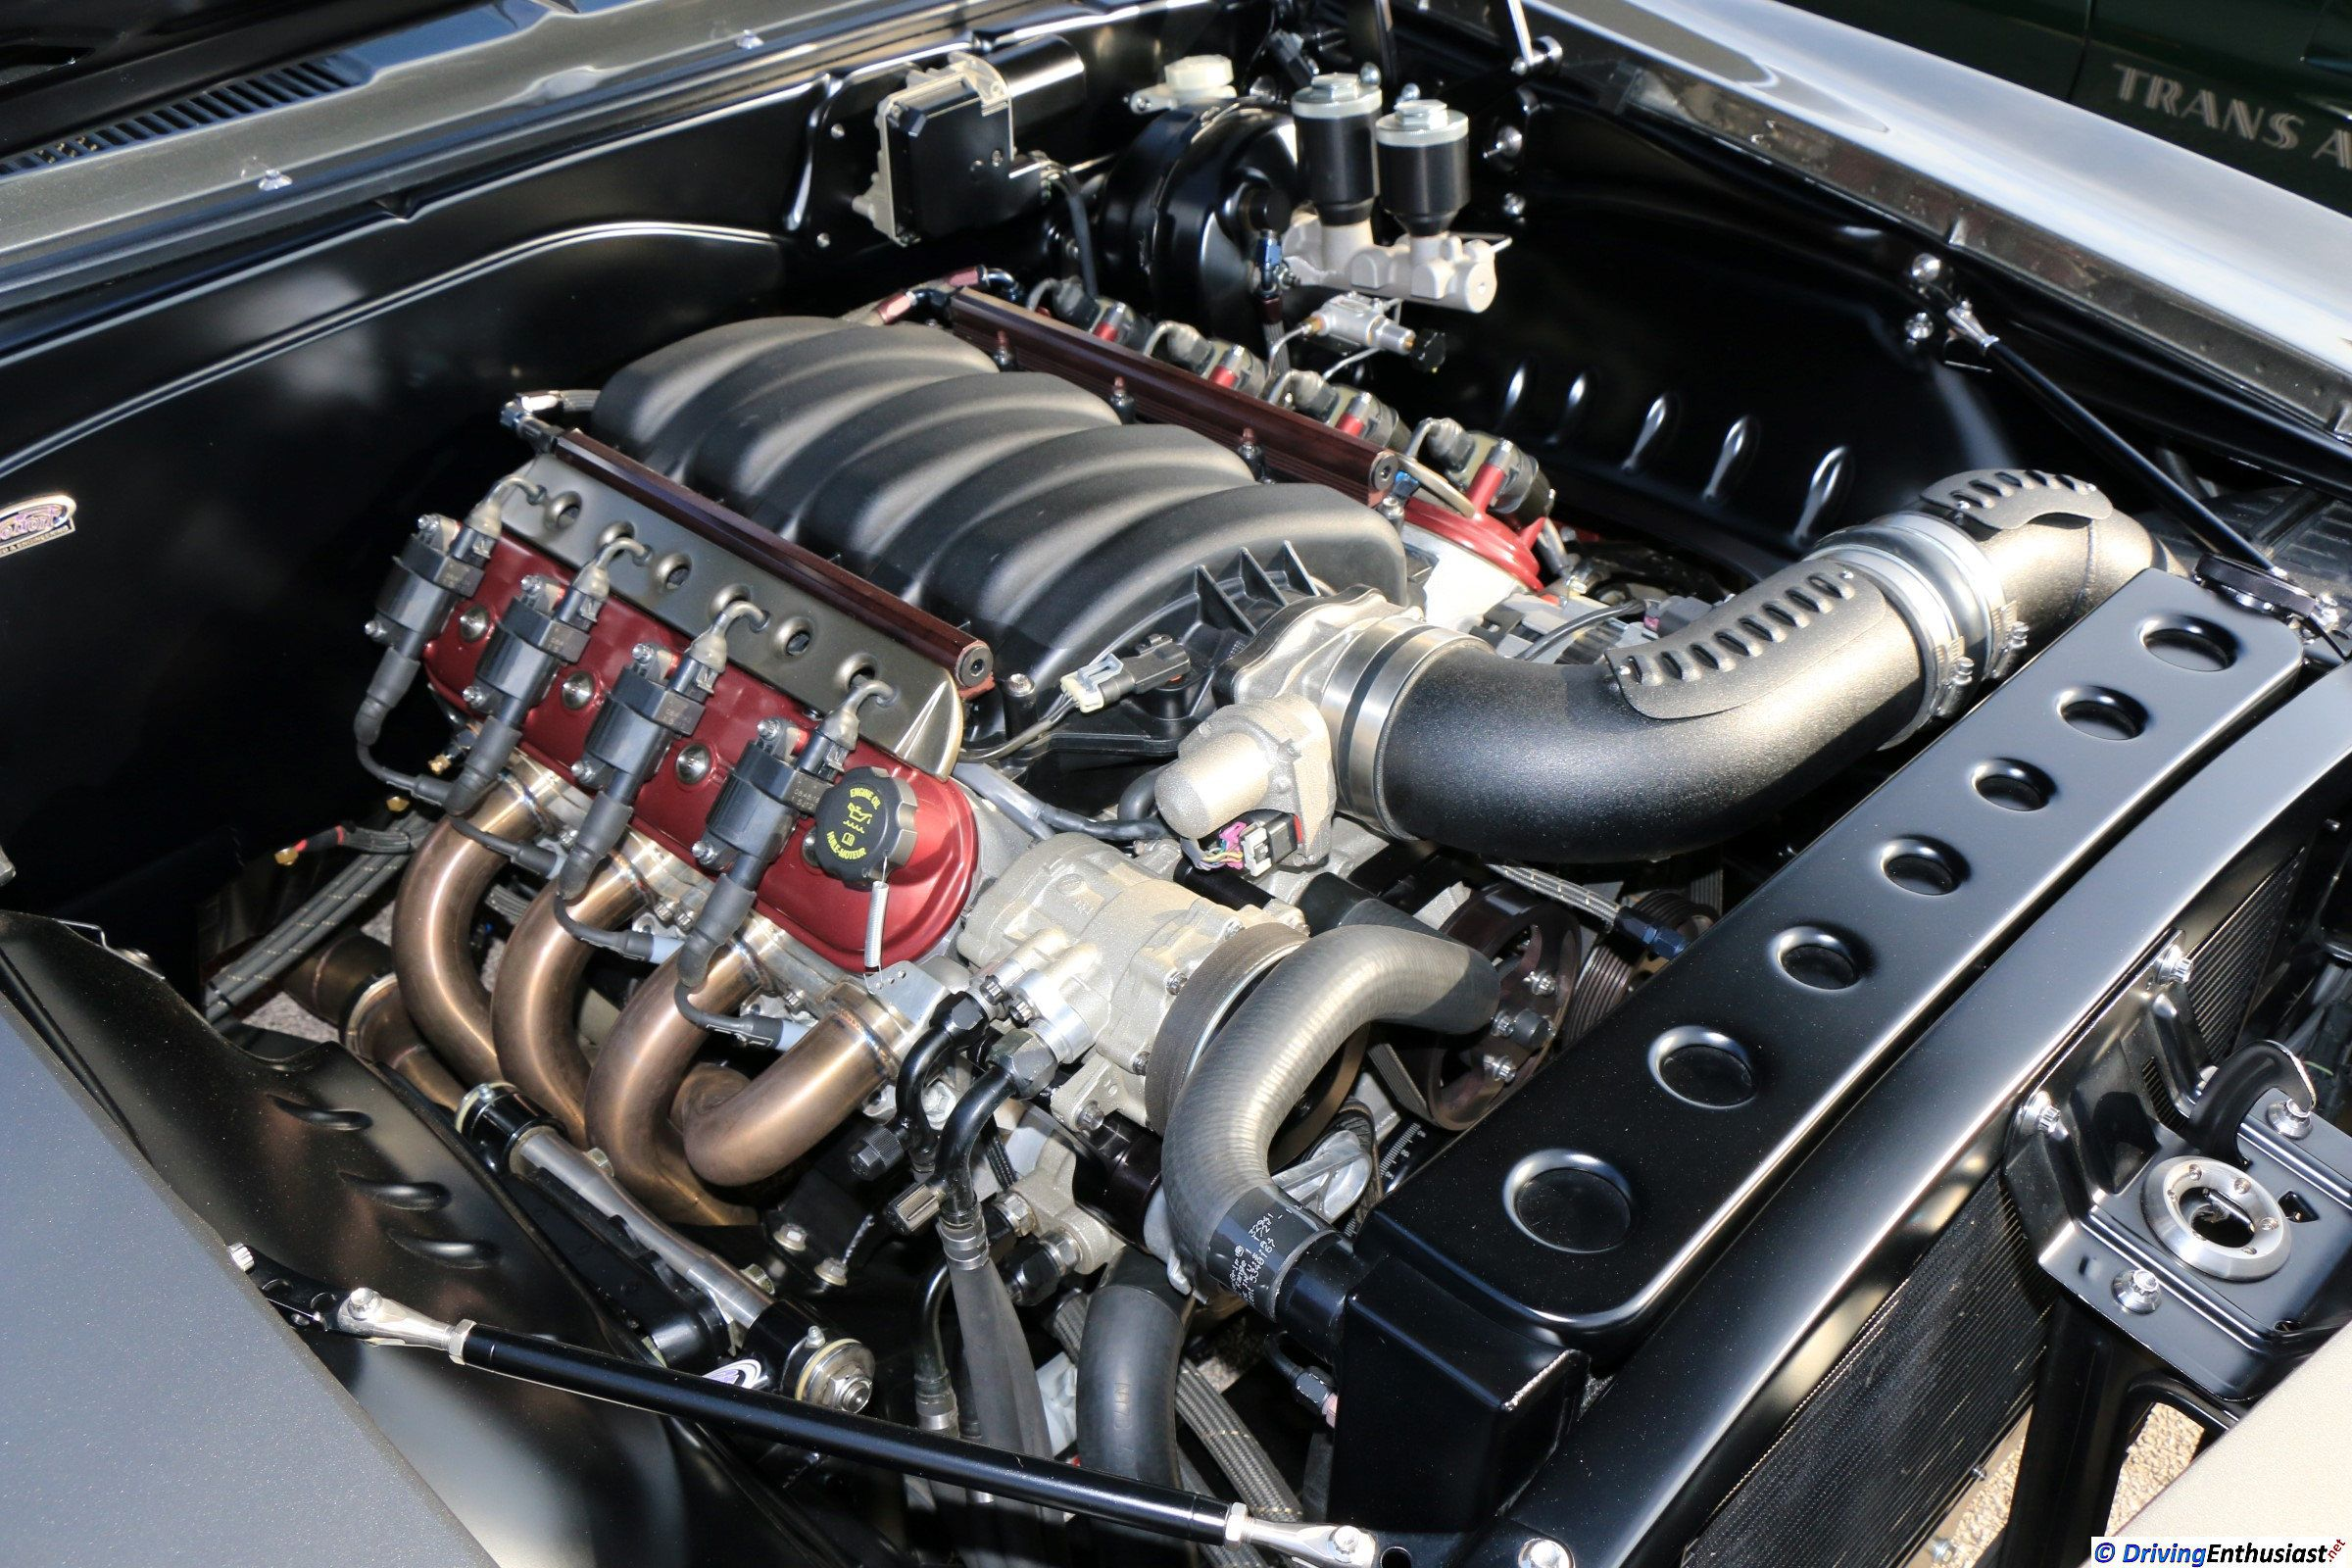 1967 Camaro with GM LSx engine swap. As shown at the